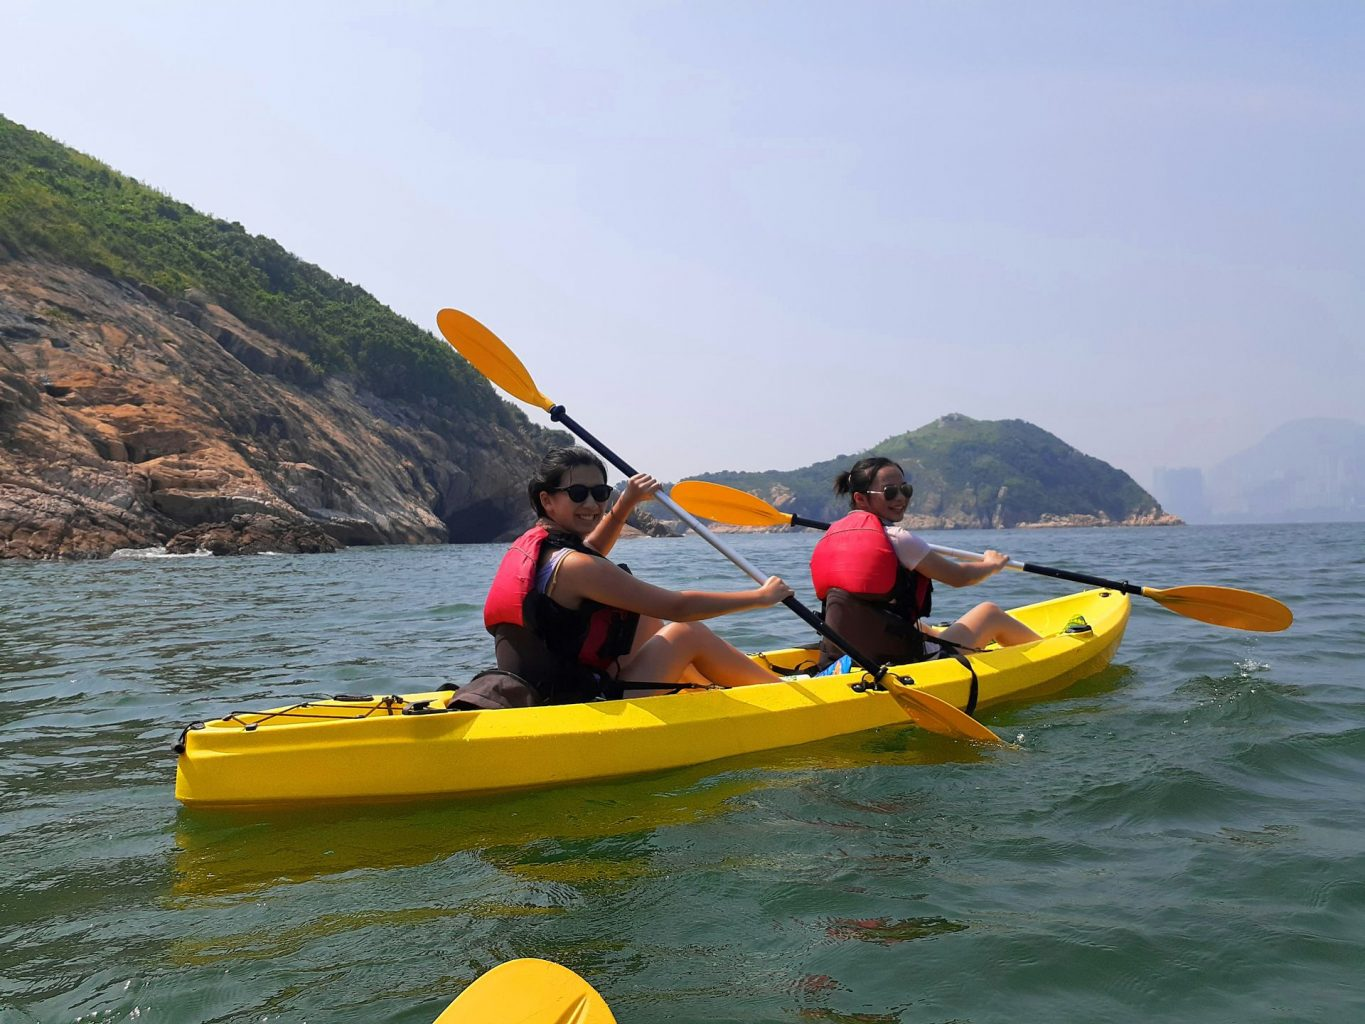 Dog Island kayak Hong Kong Aug 8 2019